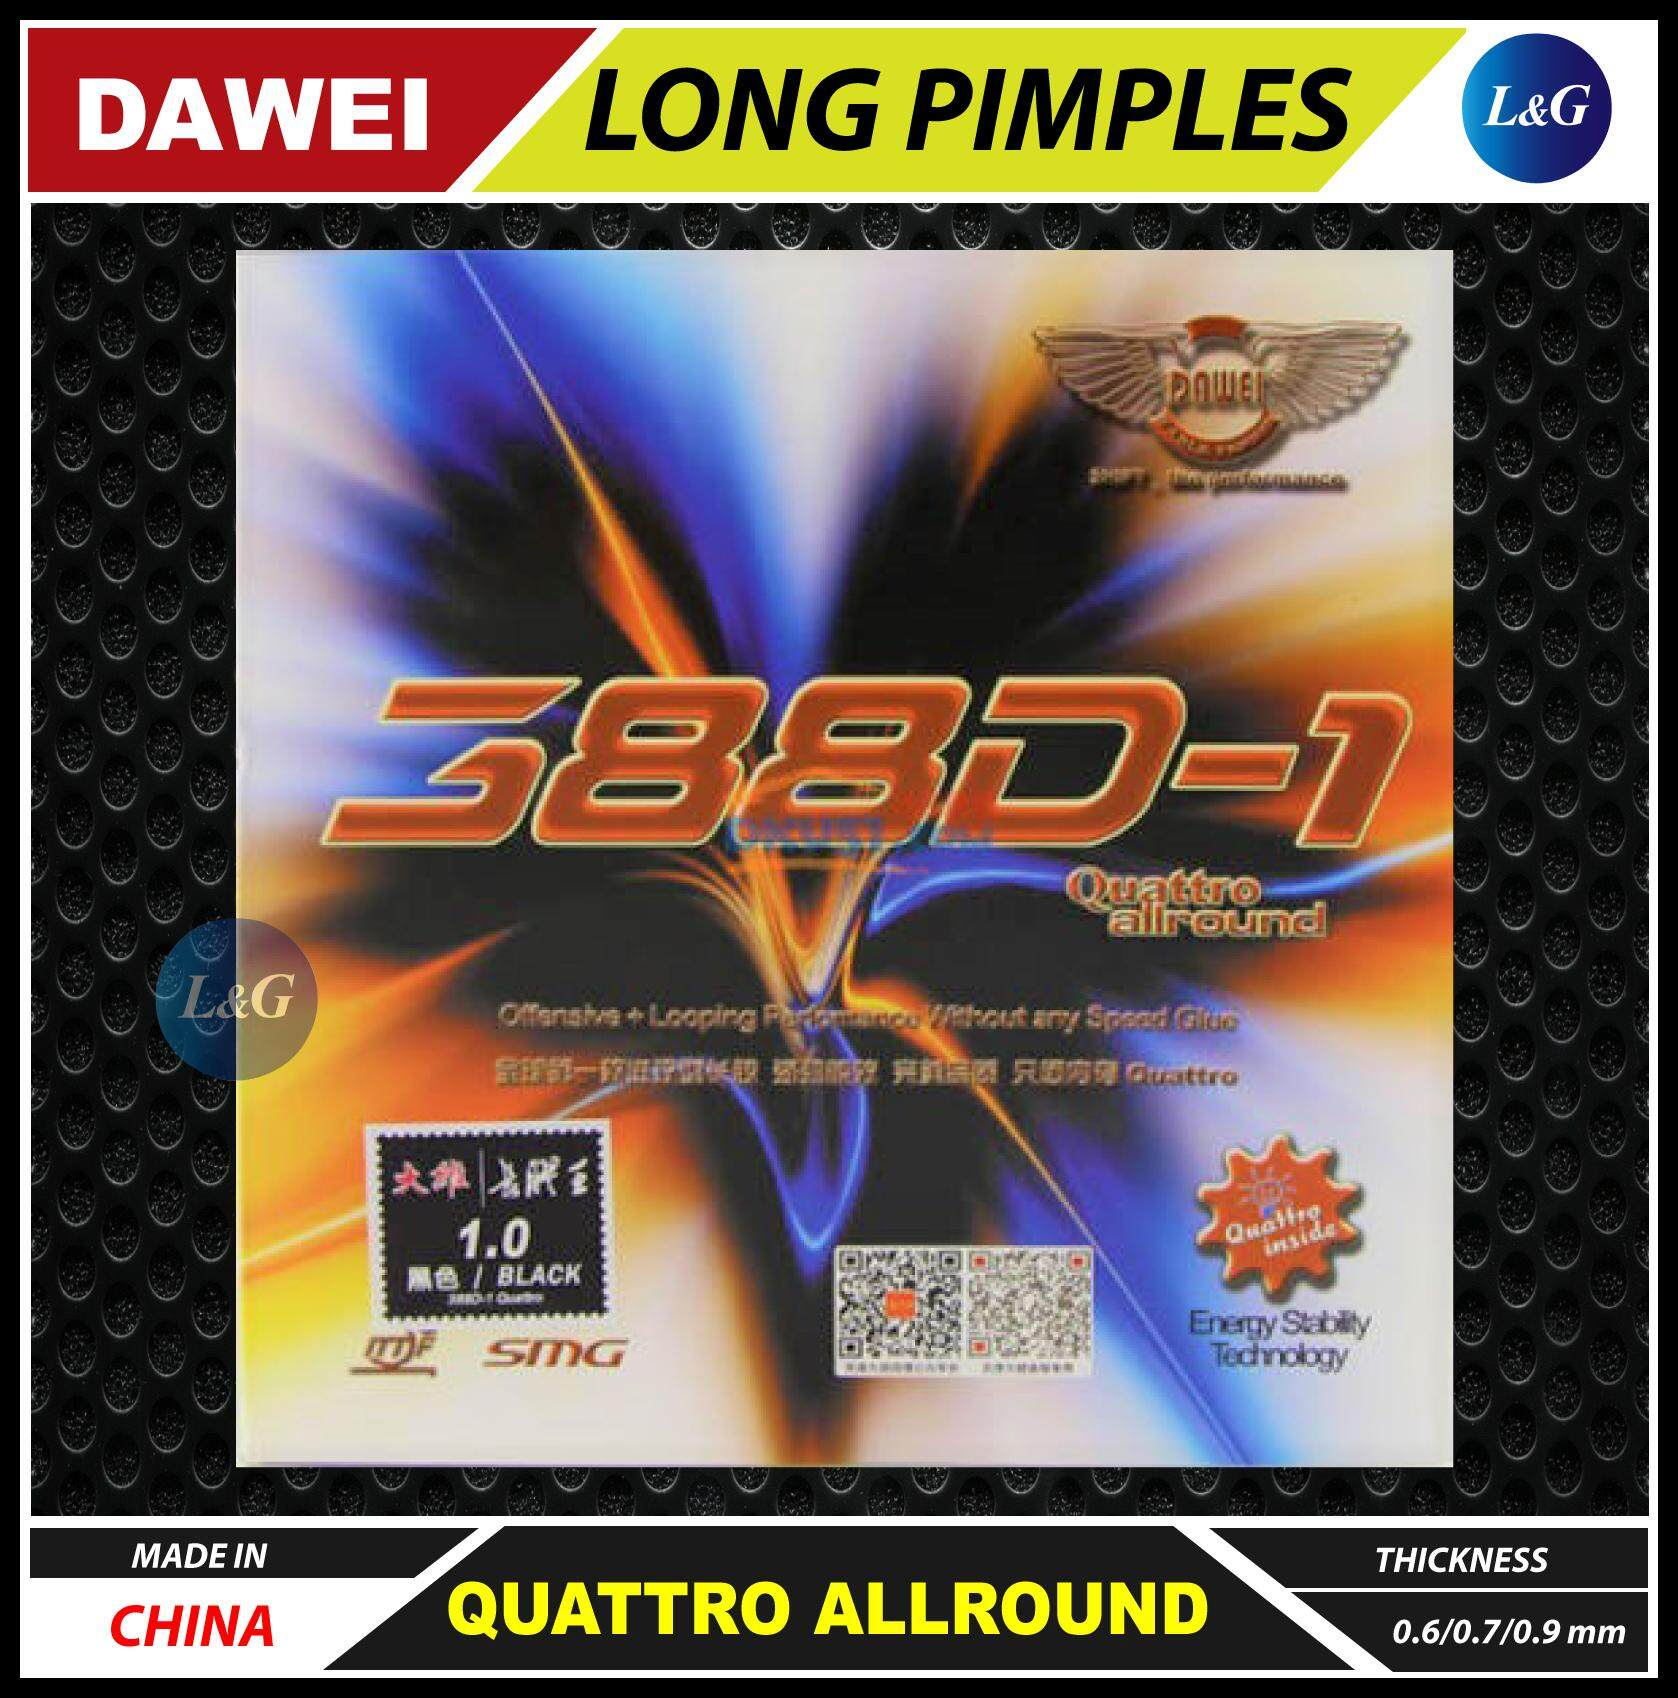 DAWEI 388D-1 Quattro Allround Long Pimples with Sponge Table Tennis Ping Pong Rubber Sheet 0.6mm / 0.7mm / 0.9mm Made In China ITTF Approved